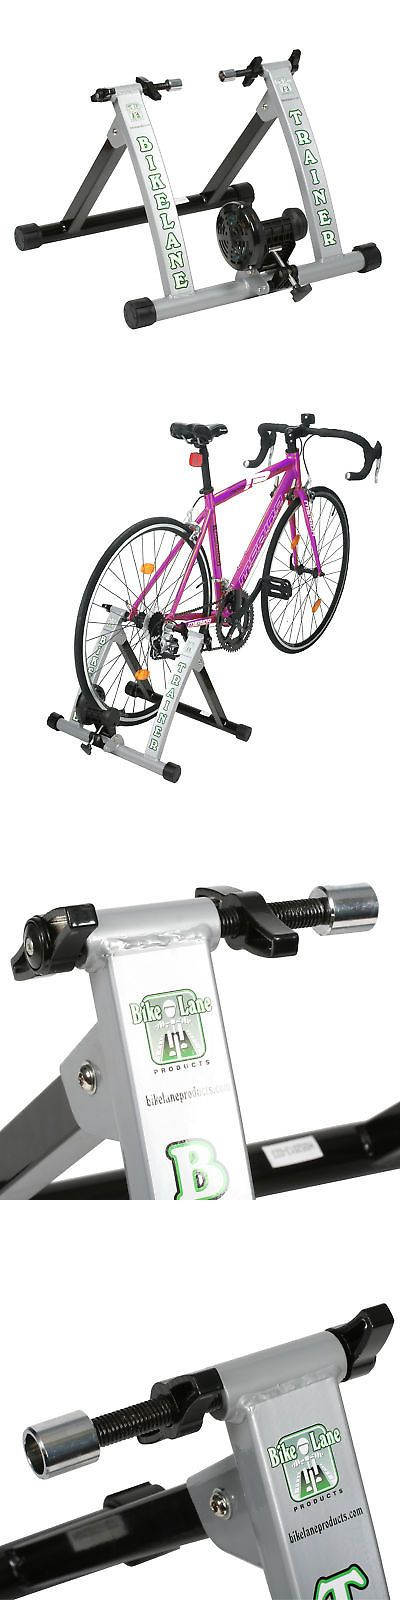 Trainers and Rollers 36141: Bike Lane Trainer Bicycle Indoor Trainer Exercise Machine Ride All Year Around -> BUY IT NOW ONLY: $62.88 on eBay!